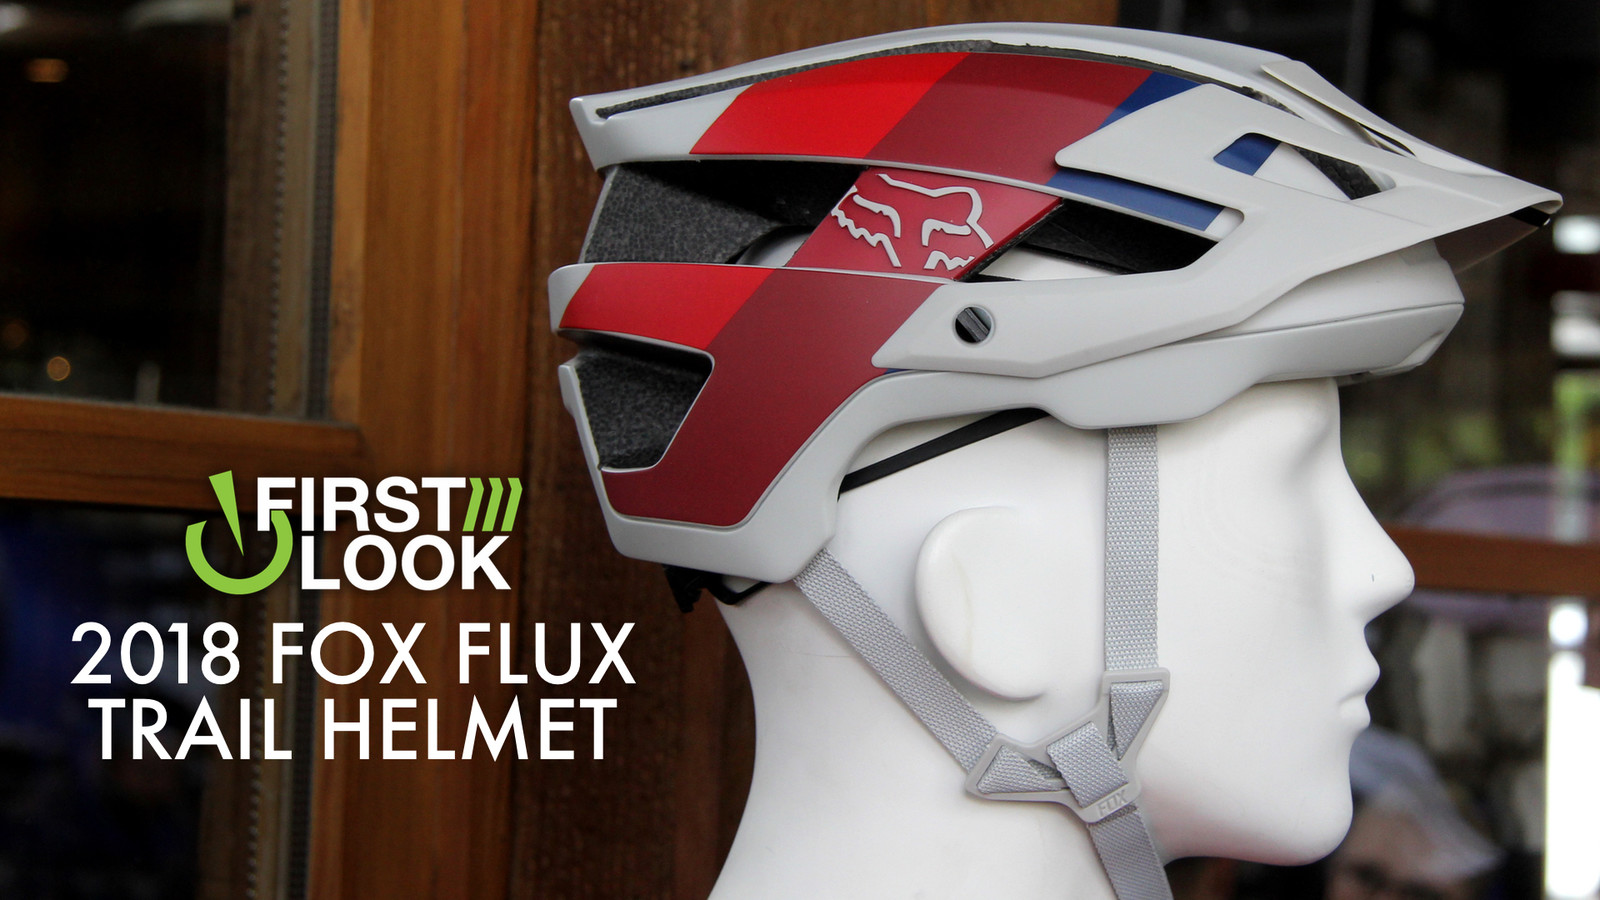 First Look: 2018 Fox Flux Trail Helmet